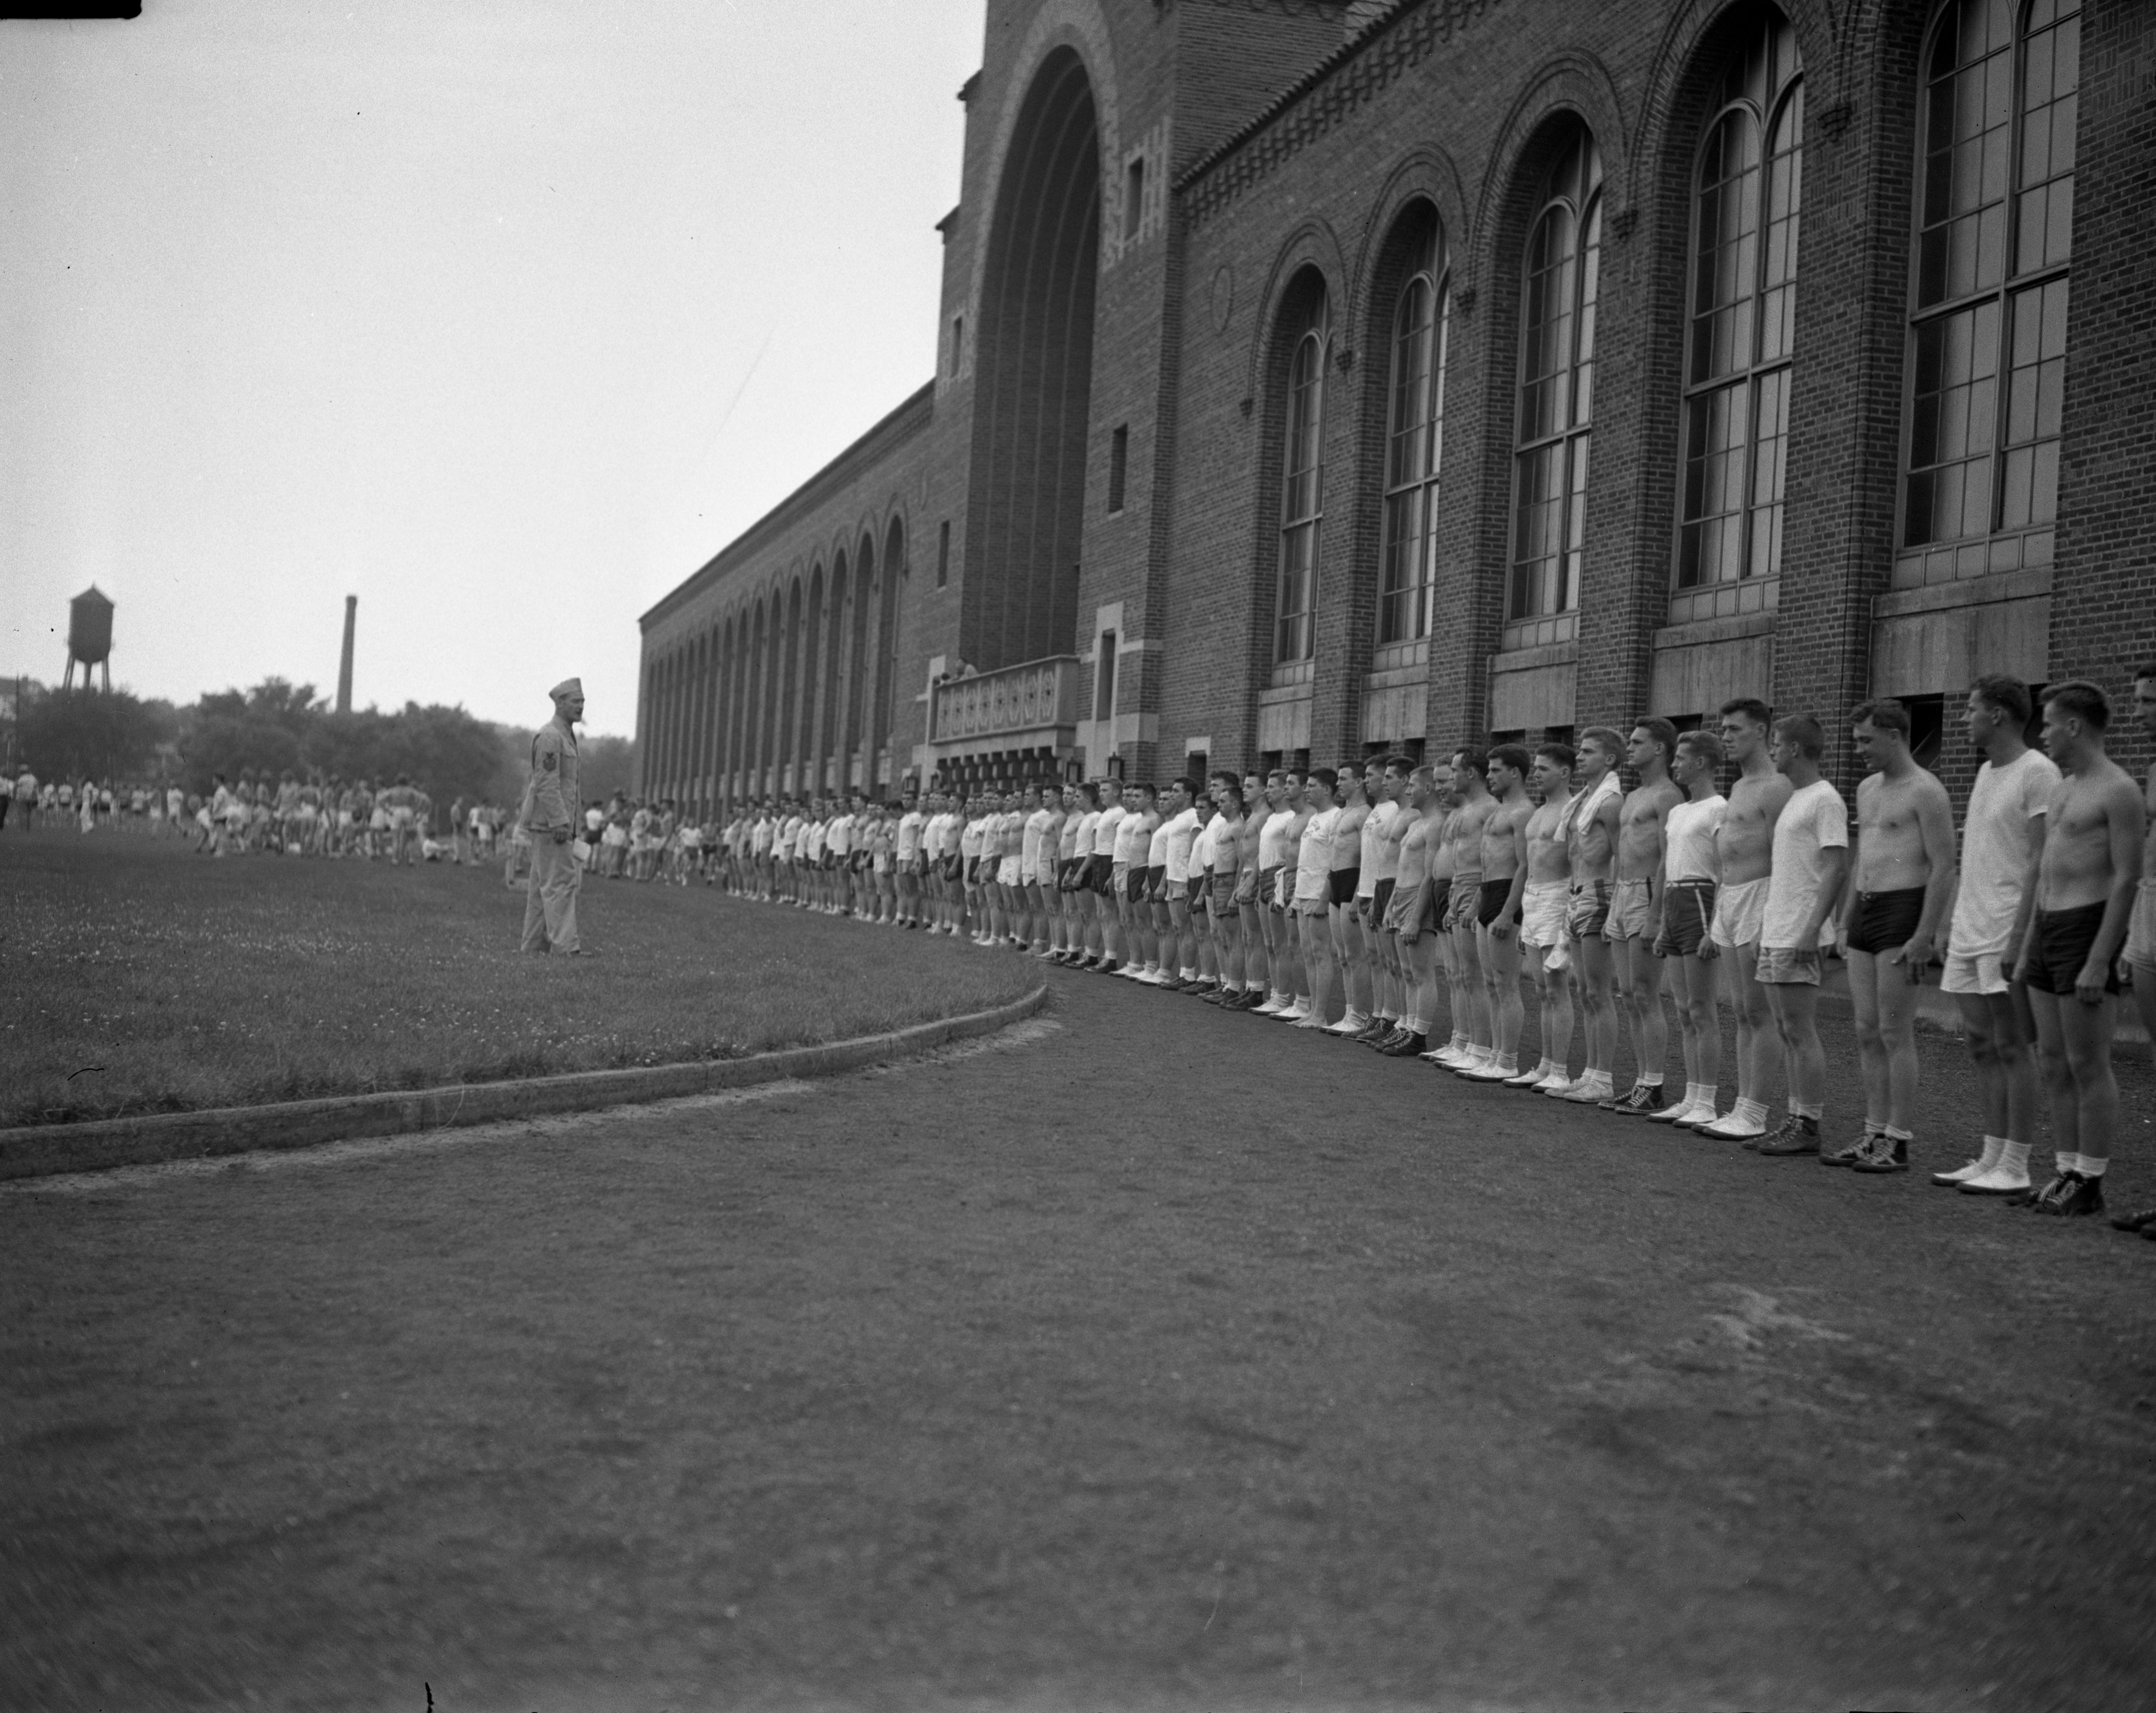 700 in Gym Class in Navy School, University of Michigan, July 1943 image